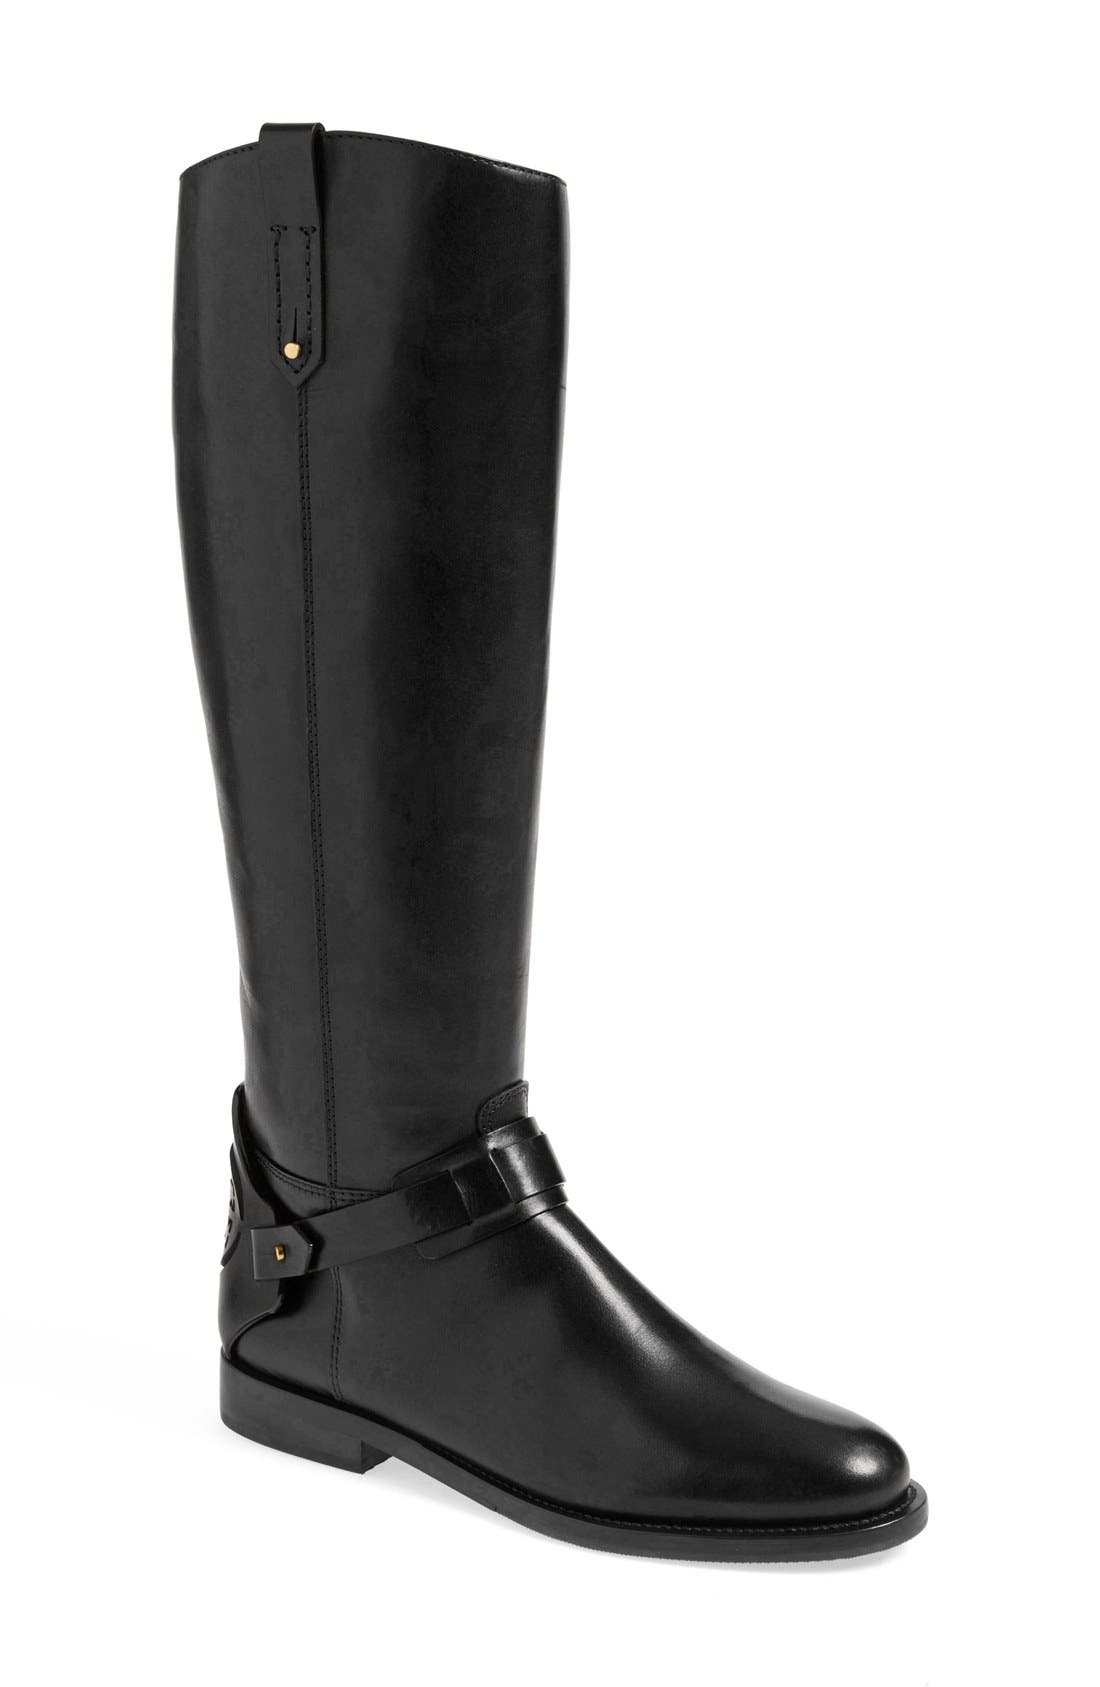 Main Image - Tory Burch 'Derby' Leather Riding Boot (Women)